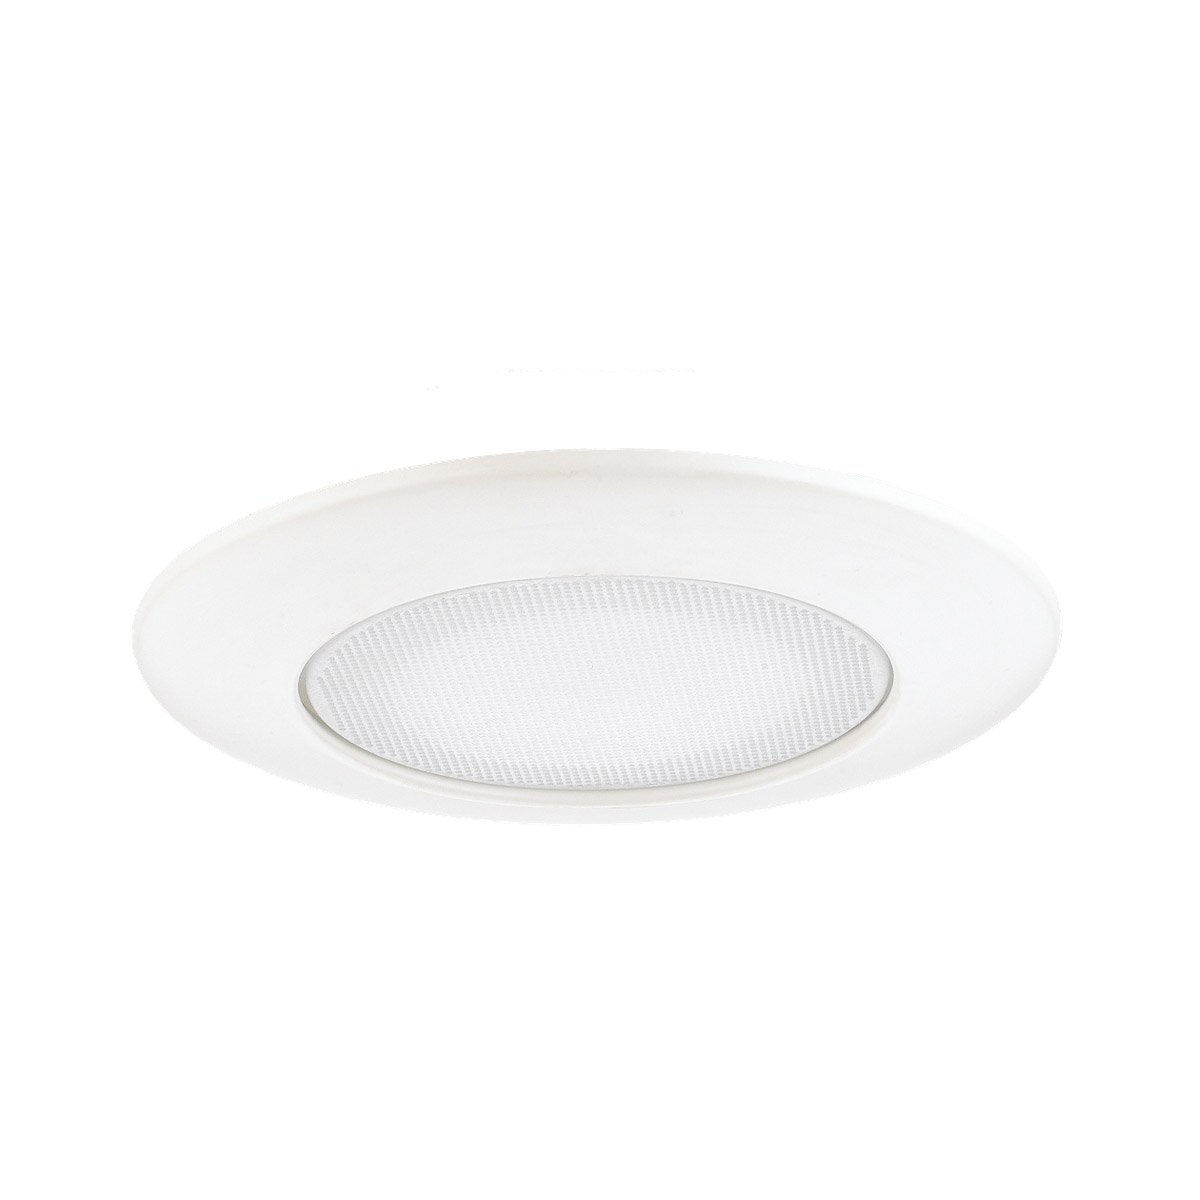 Sea Gull Lighting Signature Recessed Trim Only in White 11035AT-15